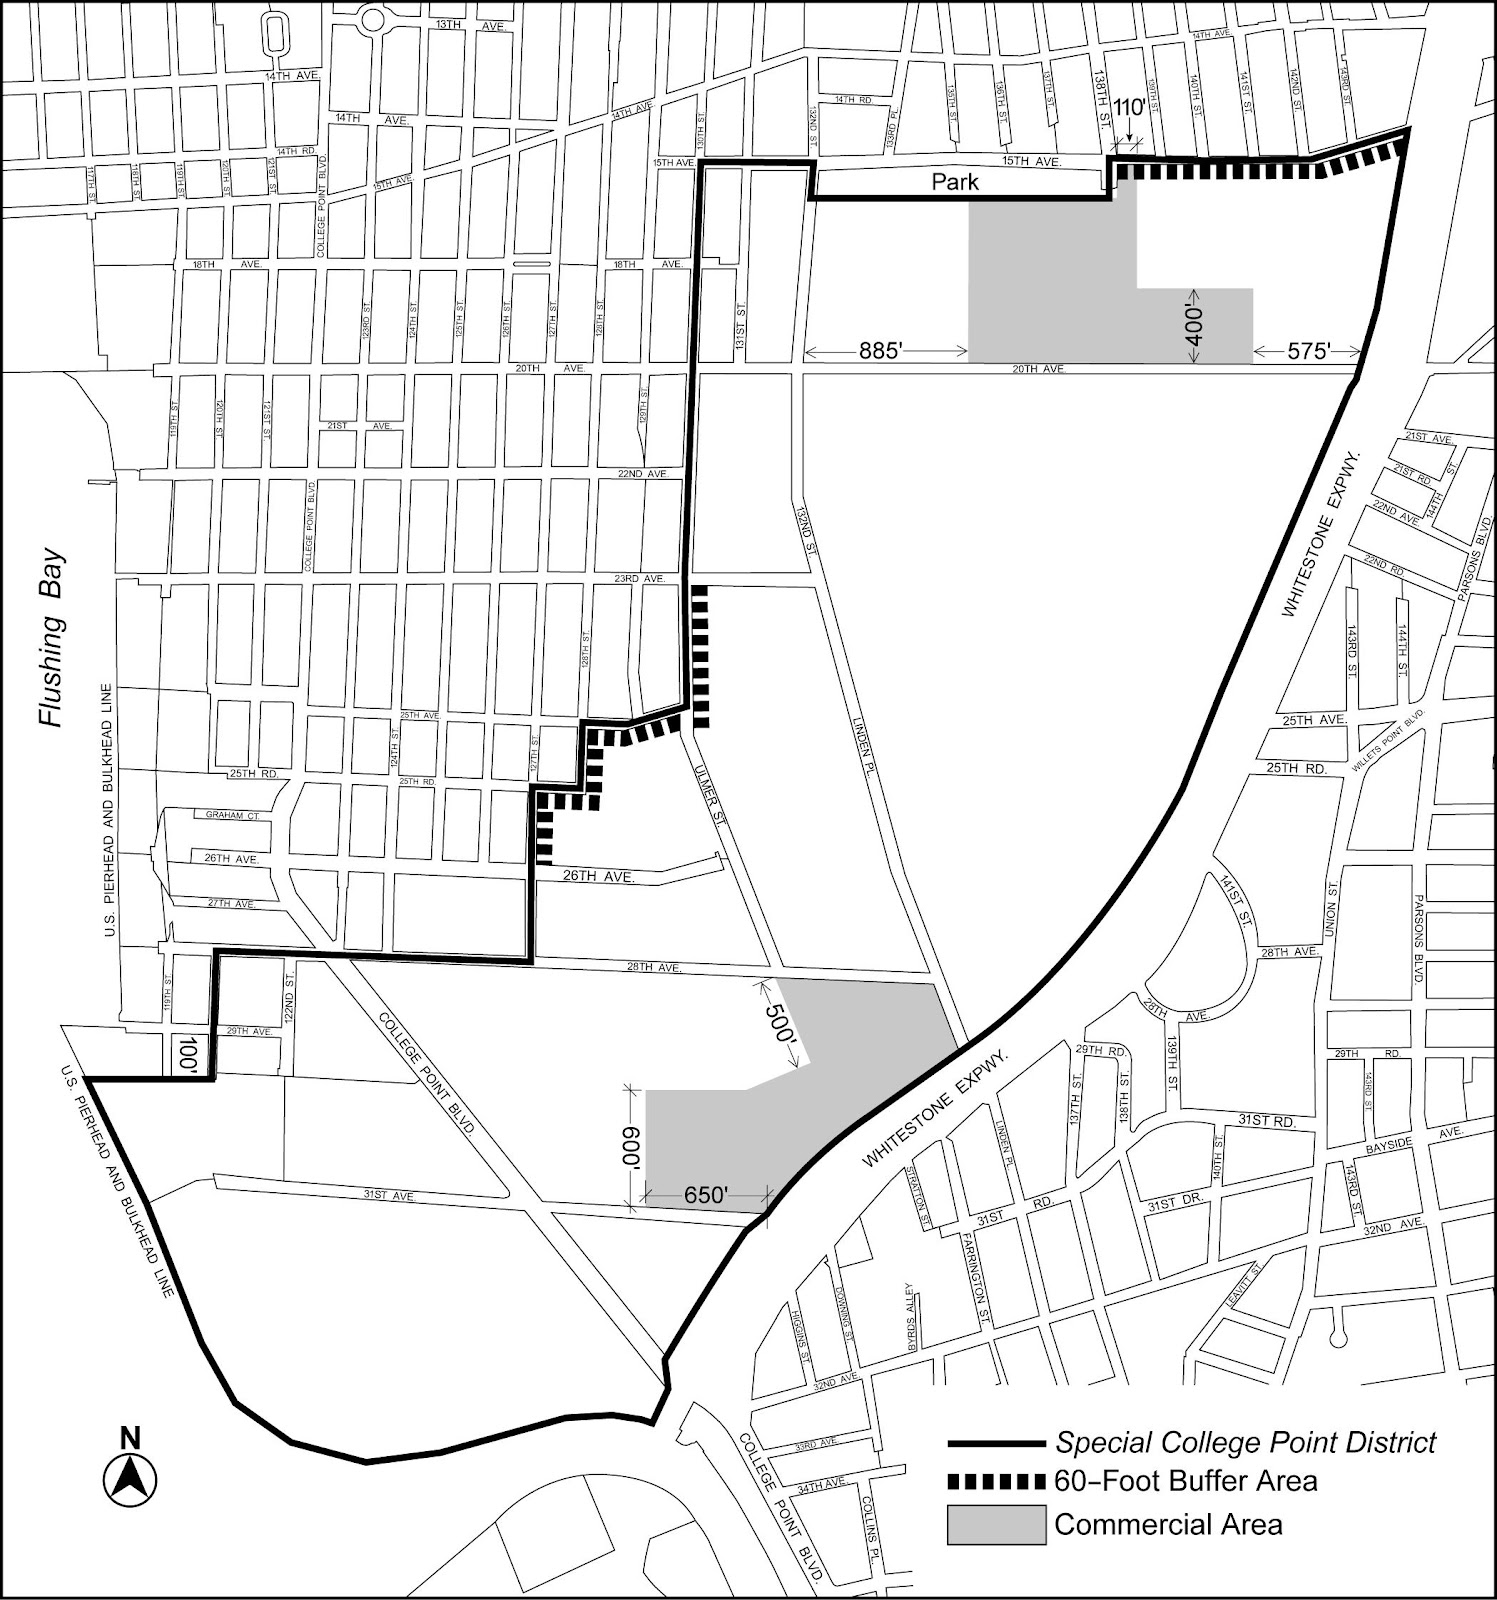 Zoning Resolutions Chapter 6: Special College Point District Appendix.0